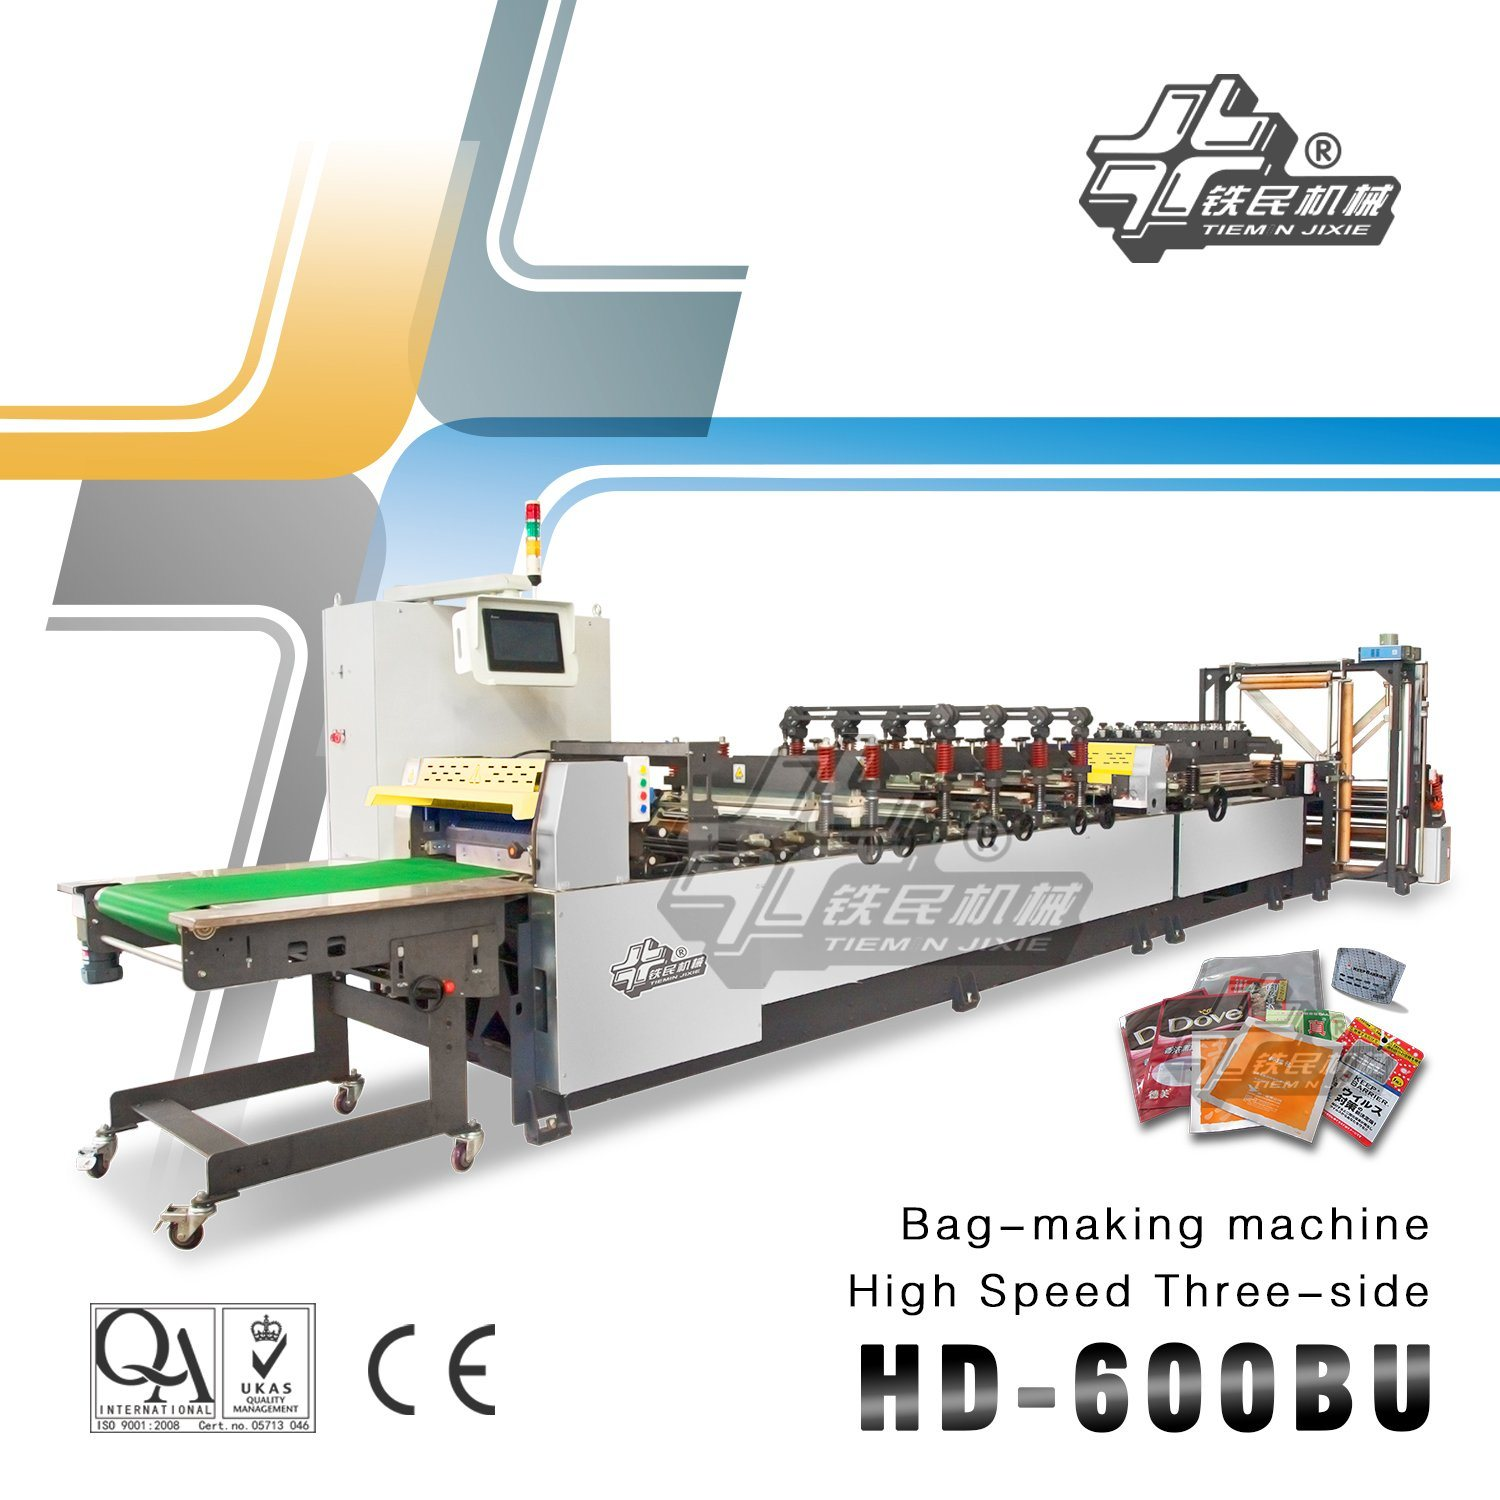 High Speed Three-Side Bag-Making Machine (Standard model)